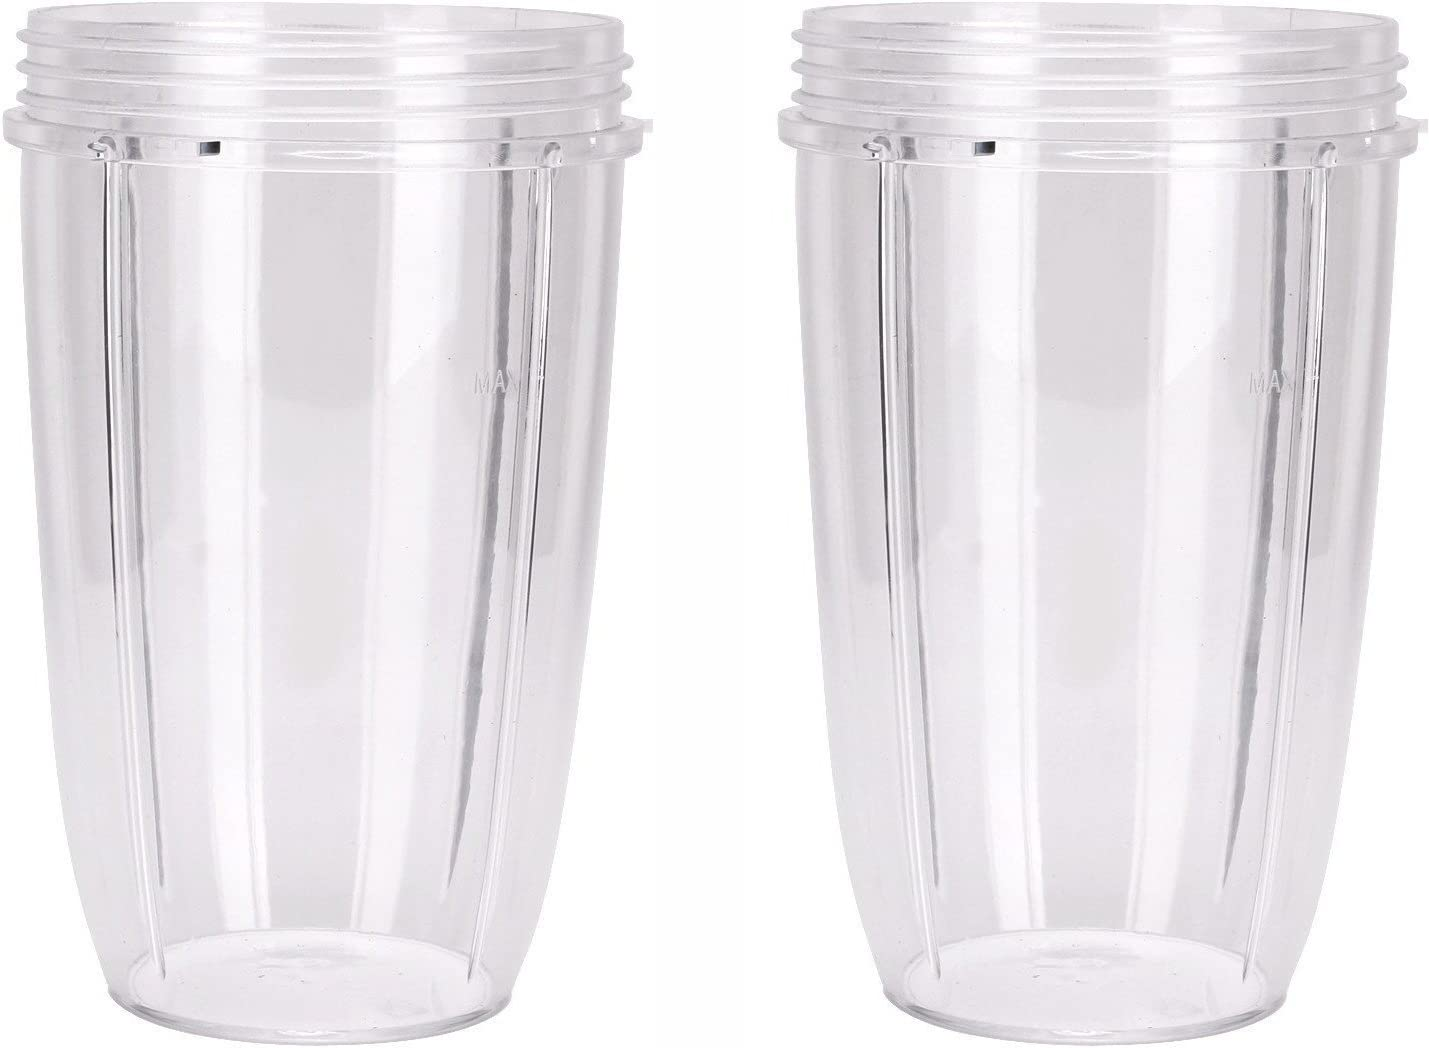 900 Cups and Mugs UK 4 x Nutribullet Flip Top Lid To Go with Gasket fits 600